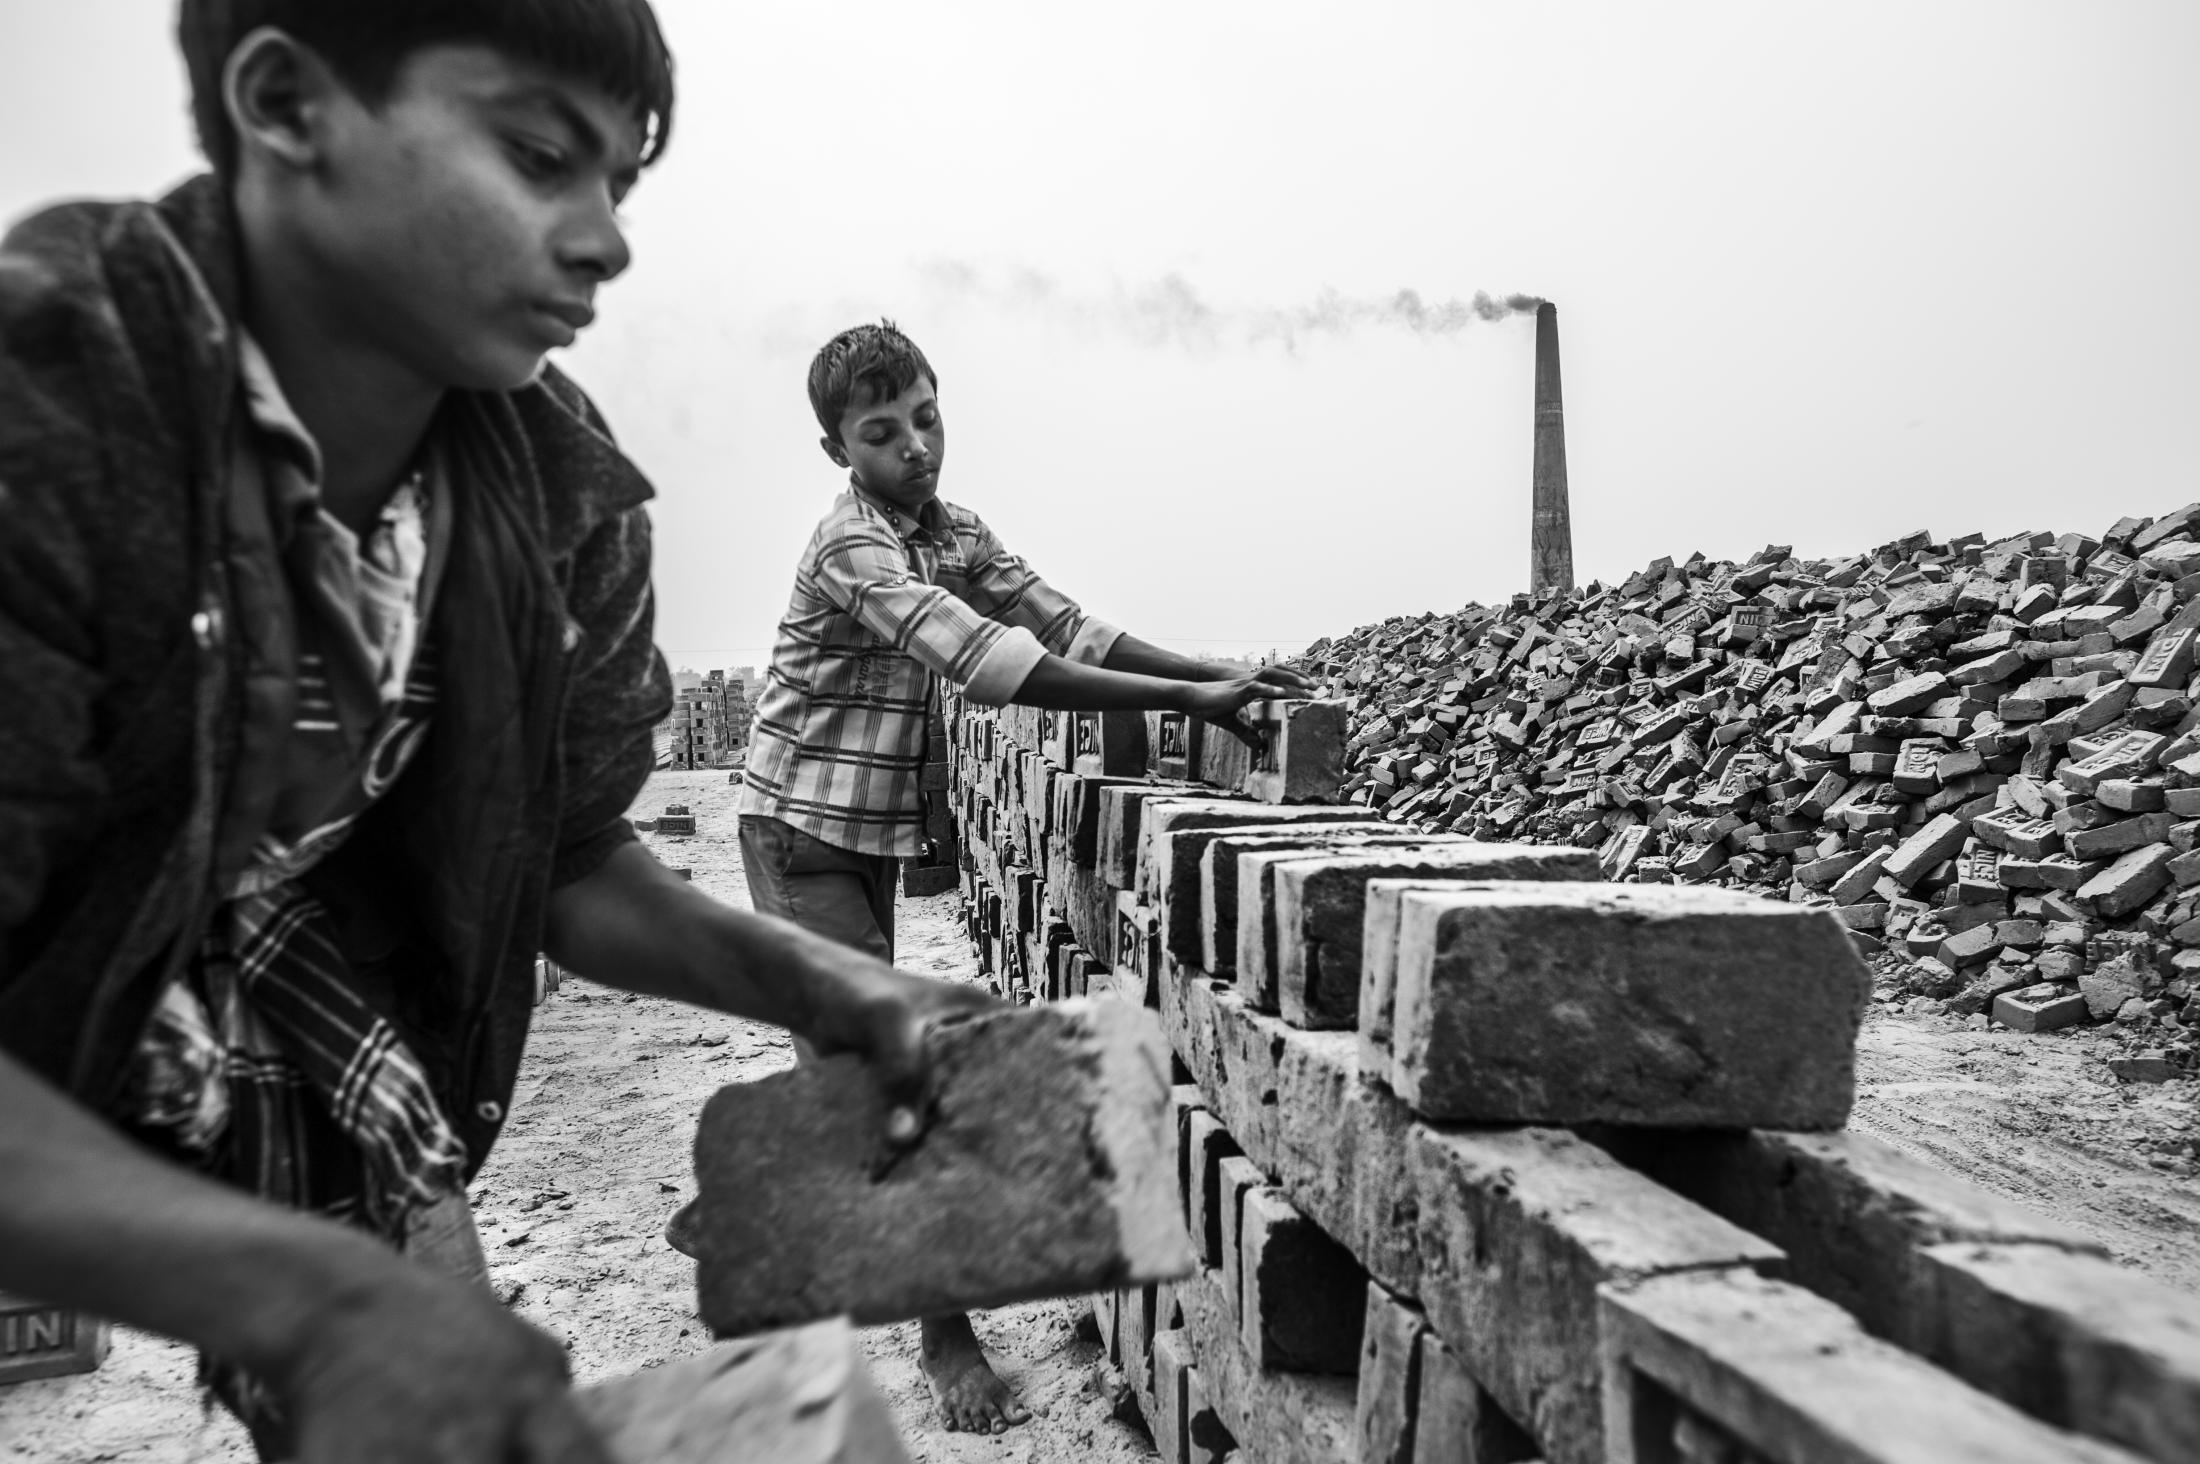 Rasel (right) and Mohamed work at �Nice� brick factory. Their work entails shifting and carting sand from one place to another, as well as stacking bricks. On a good day they can earn up to 130 Taka a day. They are forced to work to help support their families. Although the law prohibits child labour, the practice is consistent throughout the region. Enforcement of existing laws is inadequate. Child labour is technically illegal but extremely widespread. Driven by poverty, it is often parents who are forced to push their children into work at an early age. (please note all the real names of the children is this story have been changed to protect their identity)